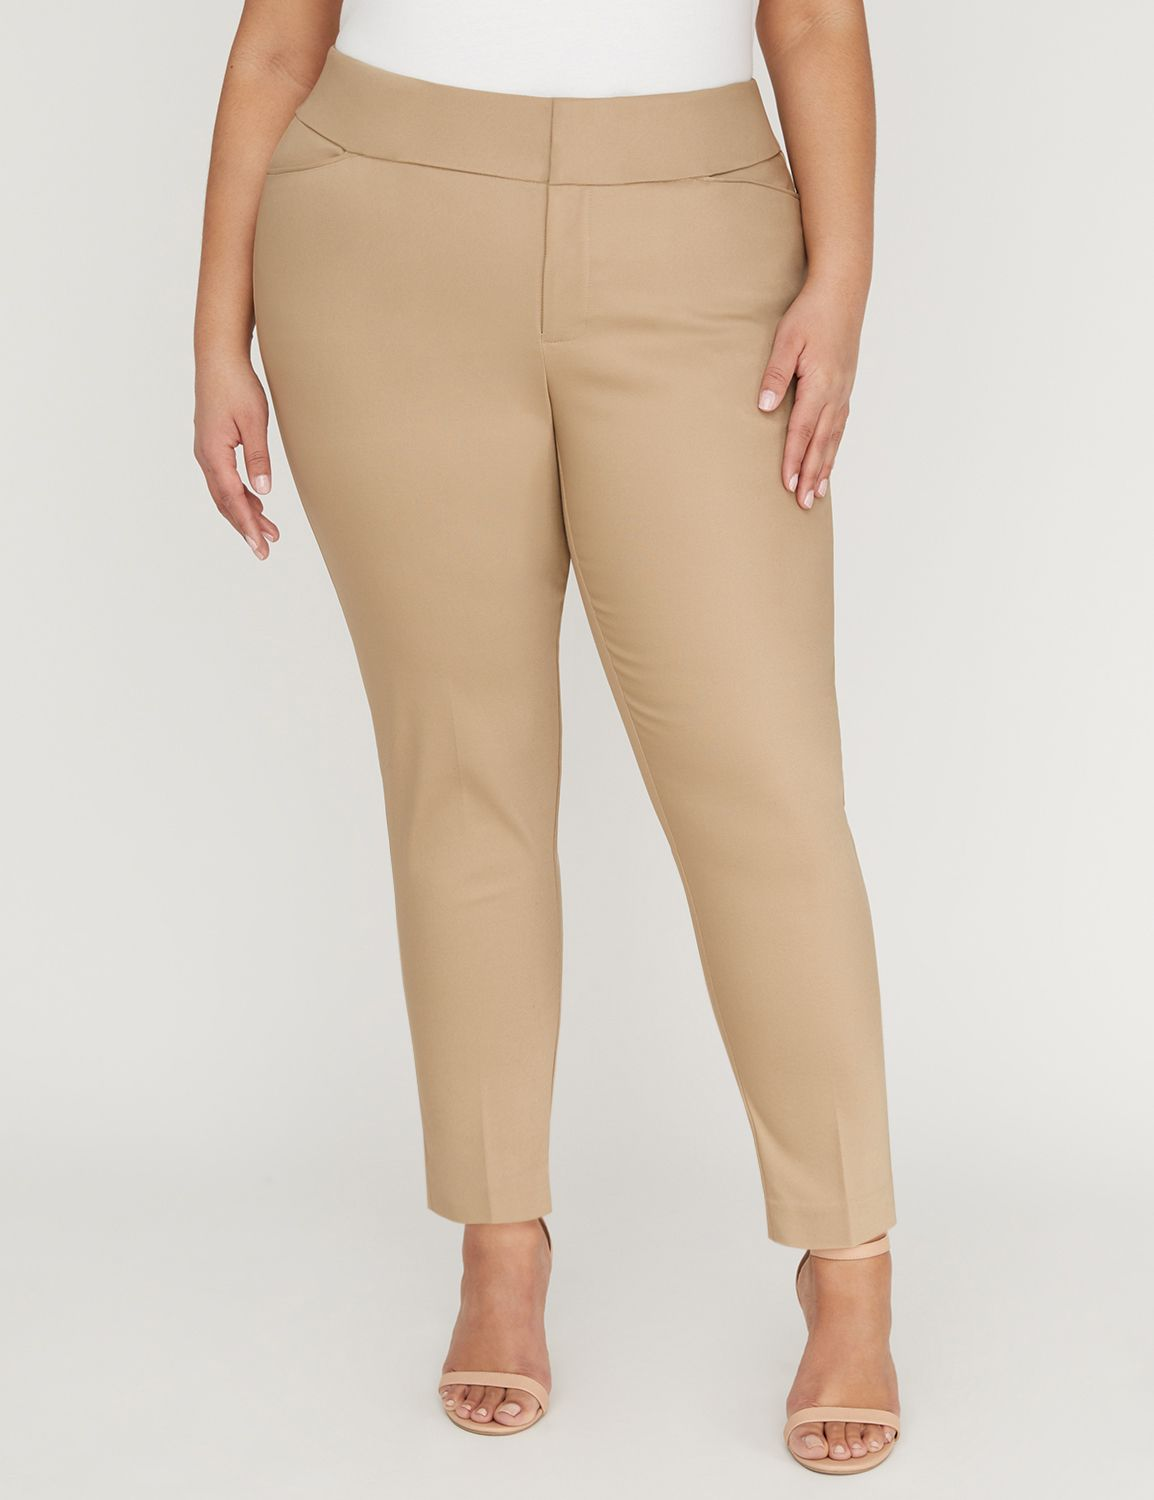 Updated Modern Stretch Ankle Pant 1087775 MODERN STRETCH WIDE WAISTBA MP-300097621